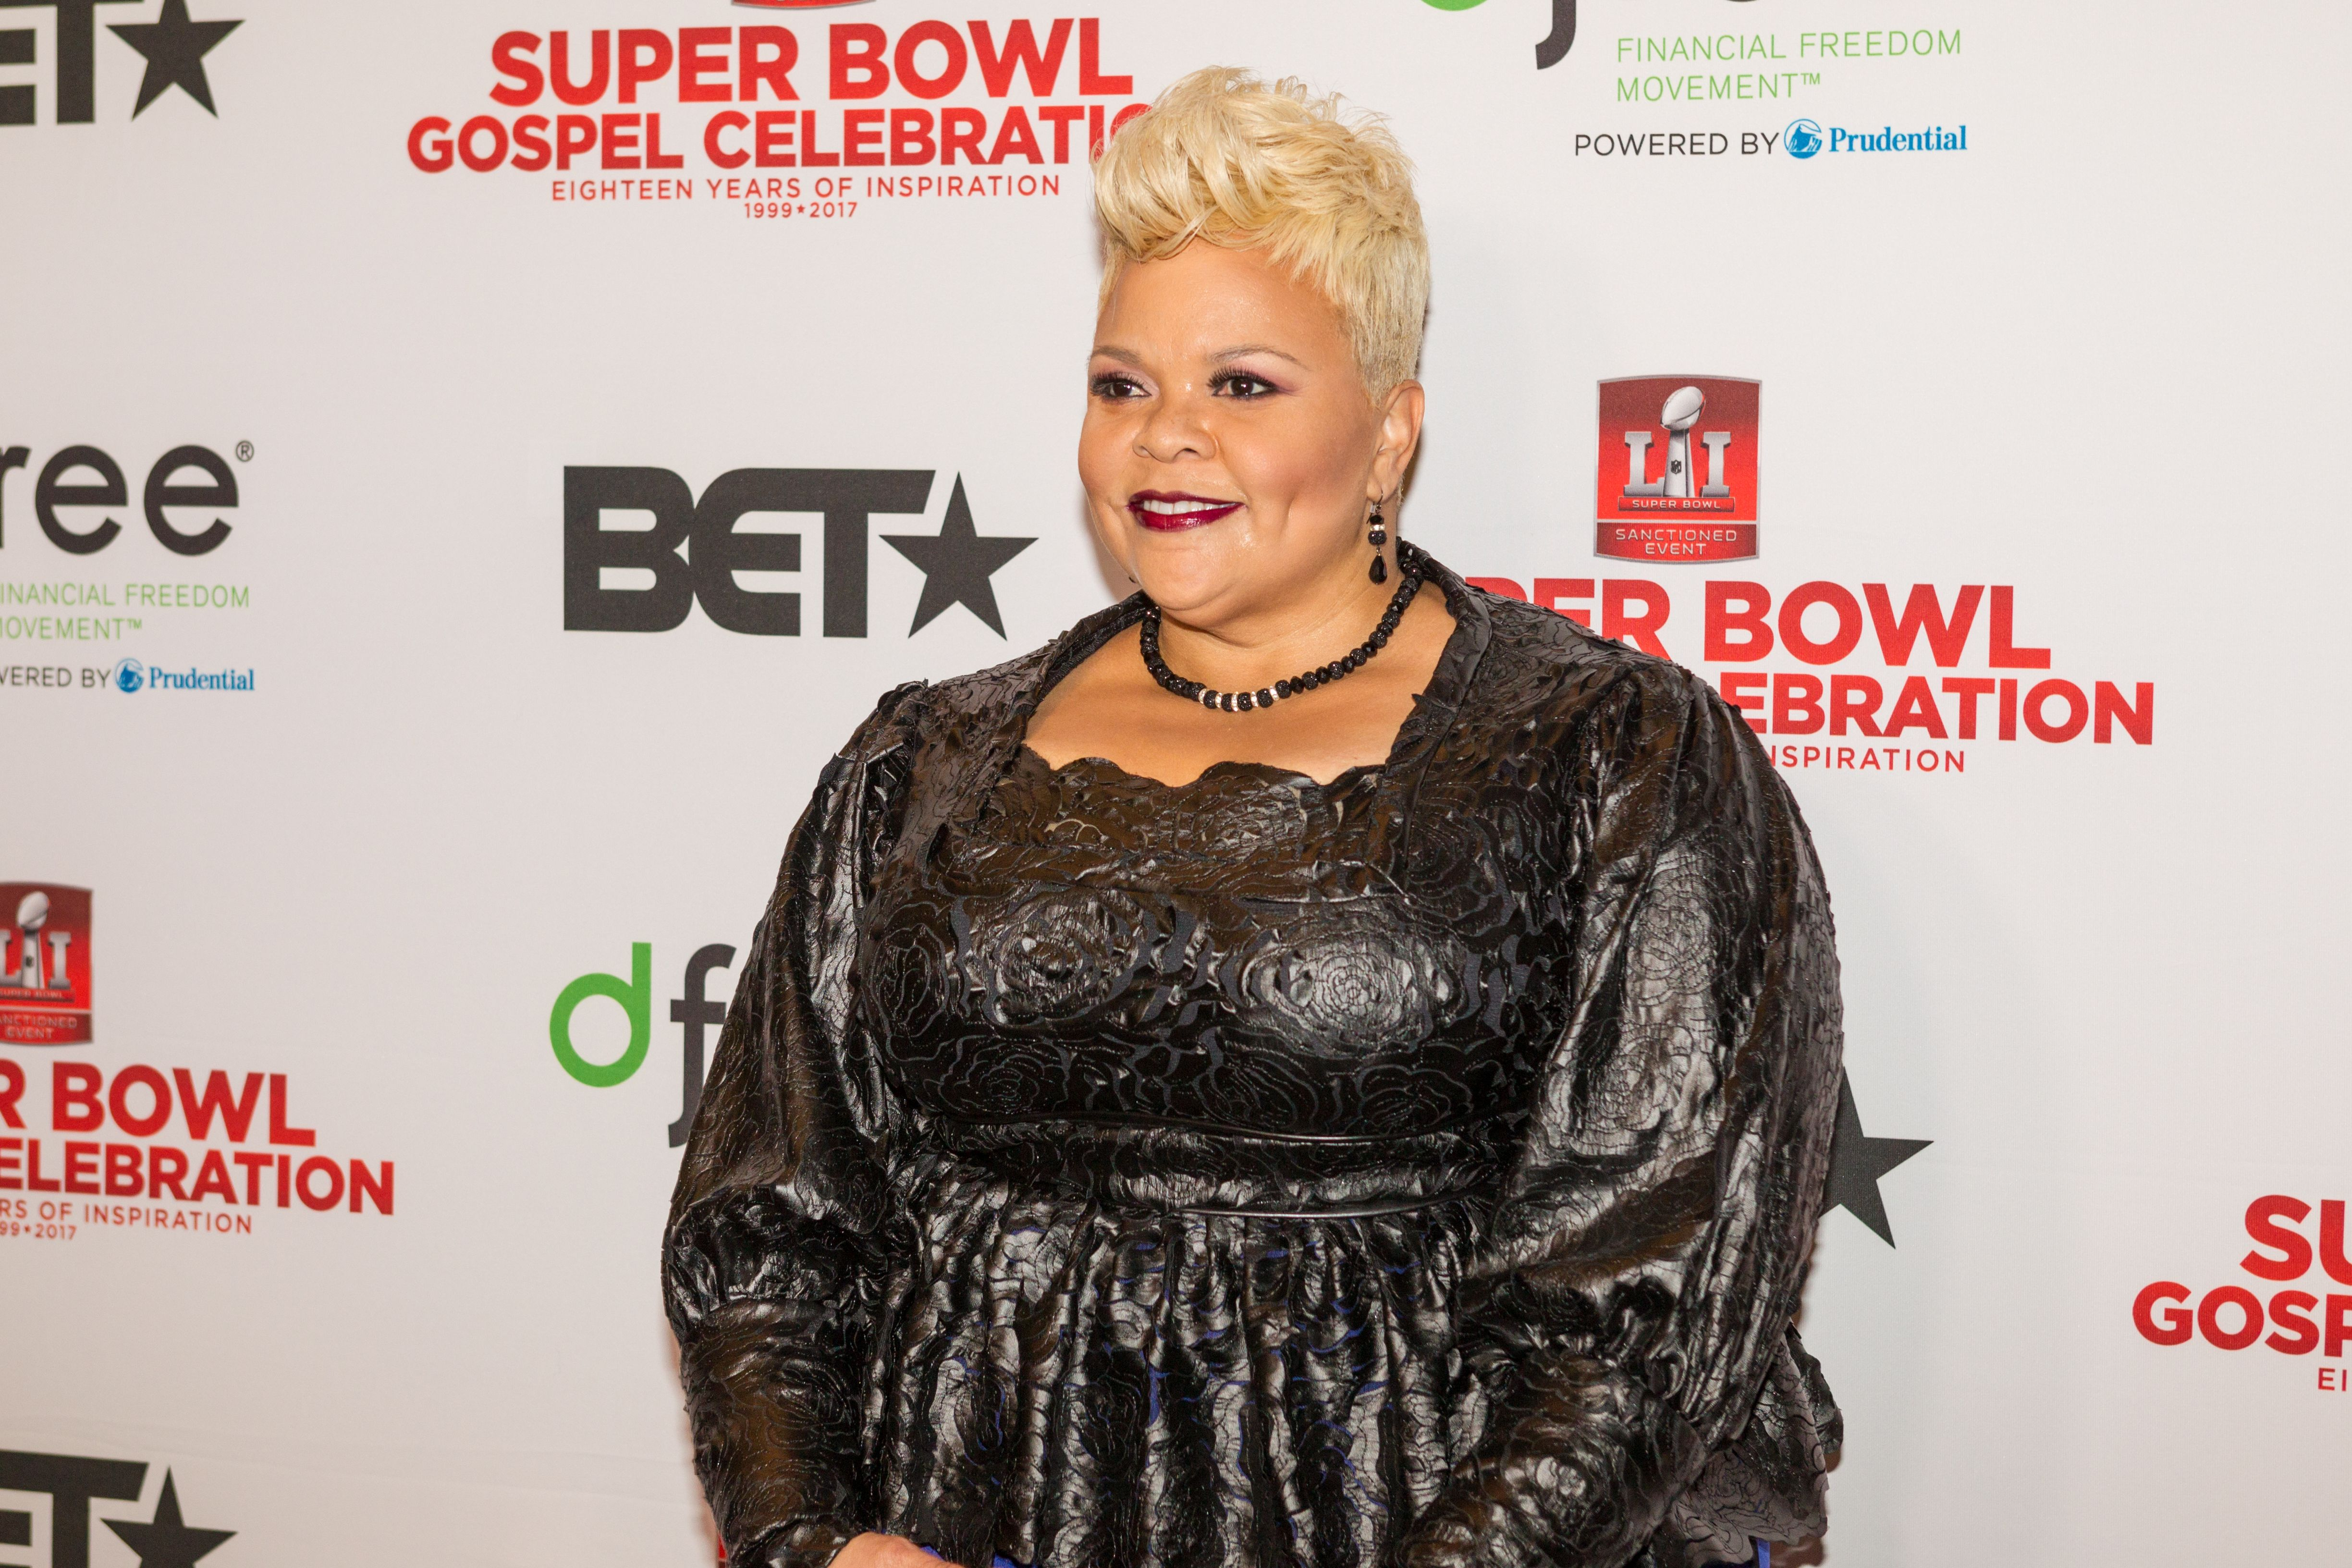 Tamela Mann attends BET's Super Bowl Gospel Celebration at Lakewood Church on February 3, 2017. | Photo: Getty Images